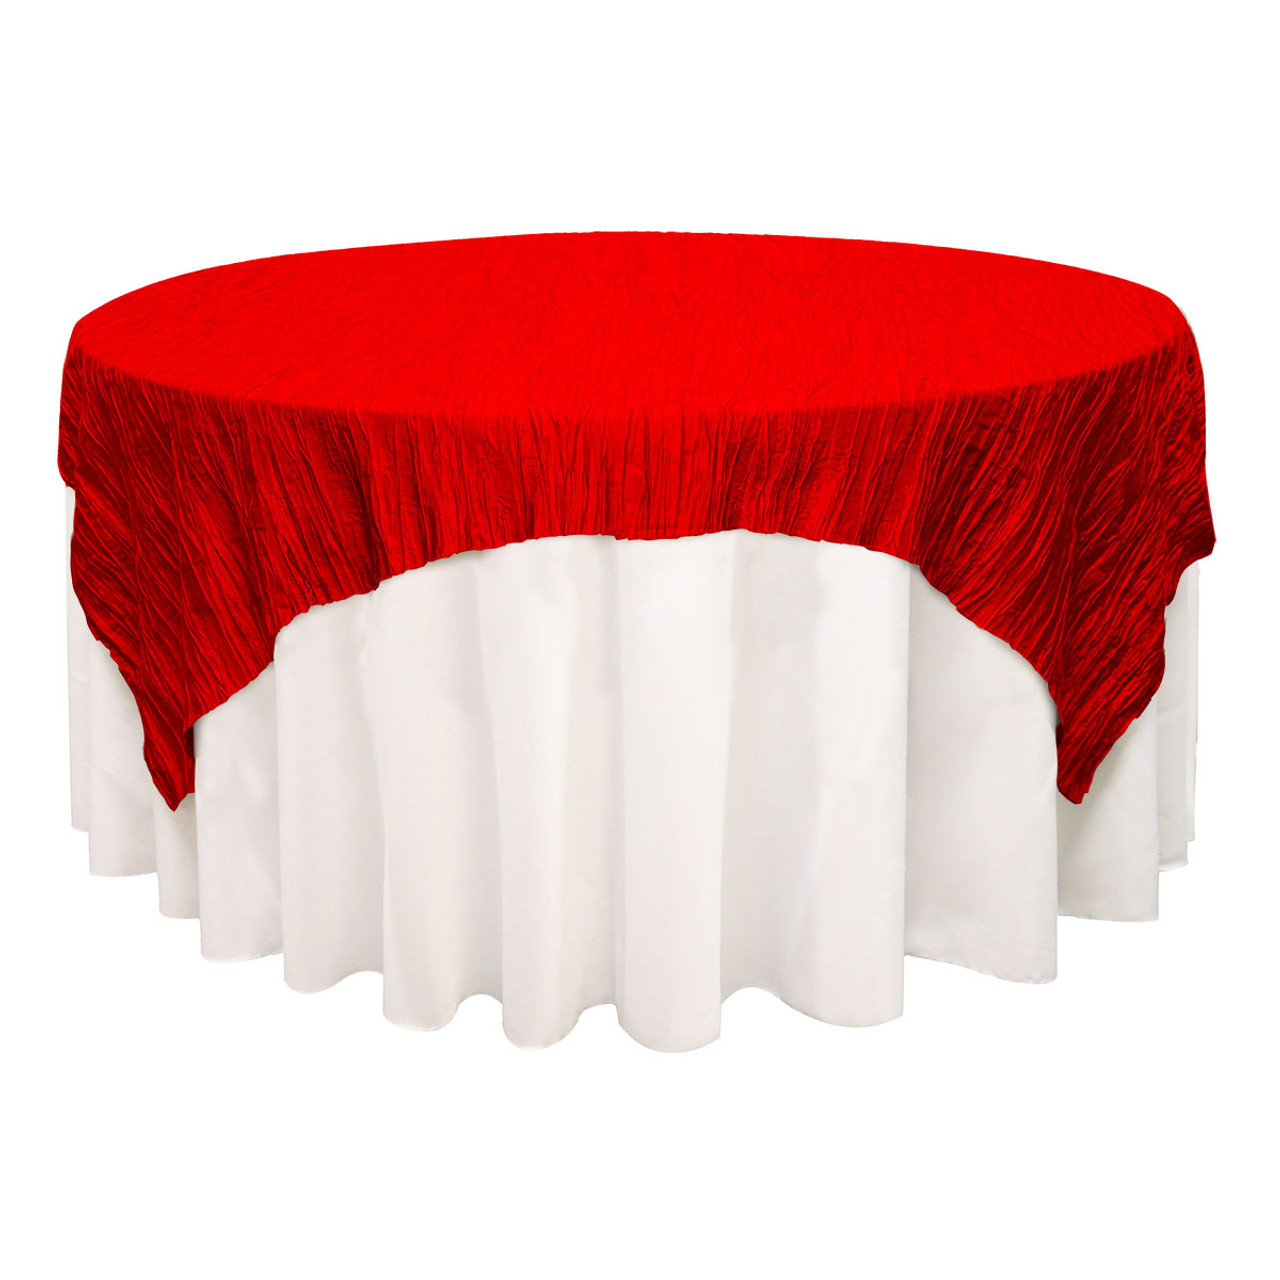 Your Chair Covers Table Covers 90 Inches X 90 Inches Square Crinkle Taffeta Table